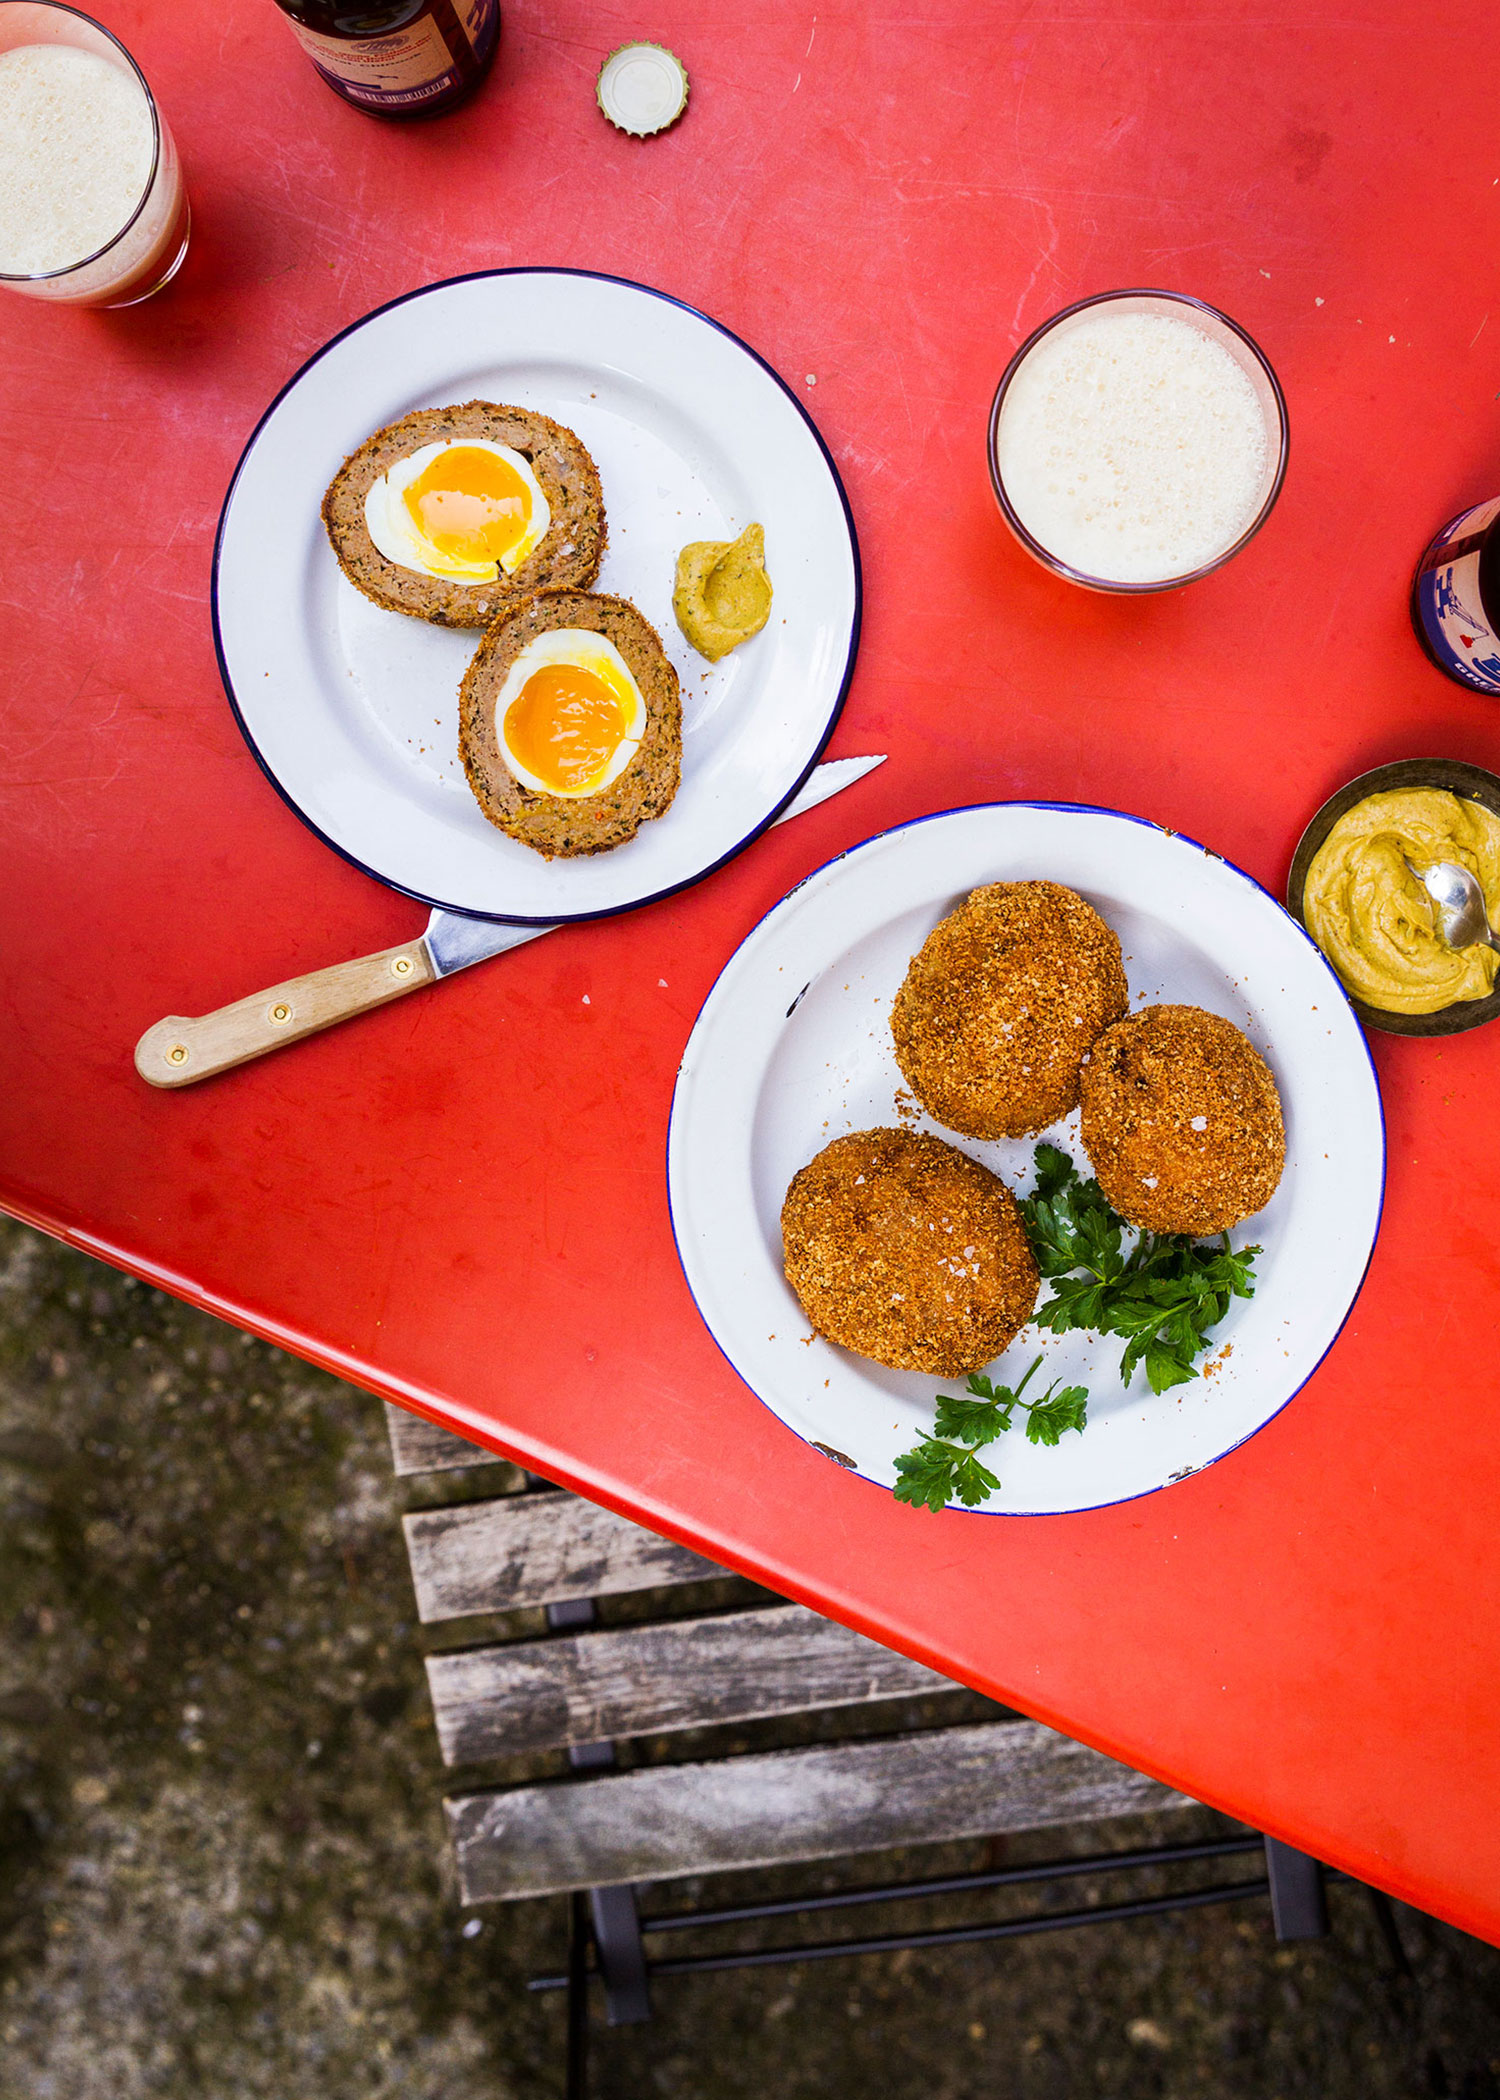 01_NOMNOM_Scotch_Eggs.jpg